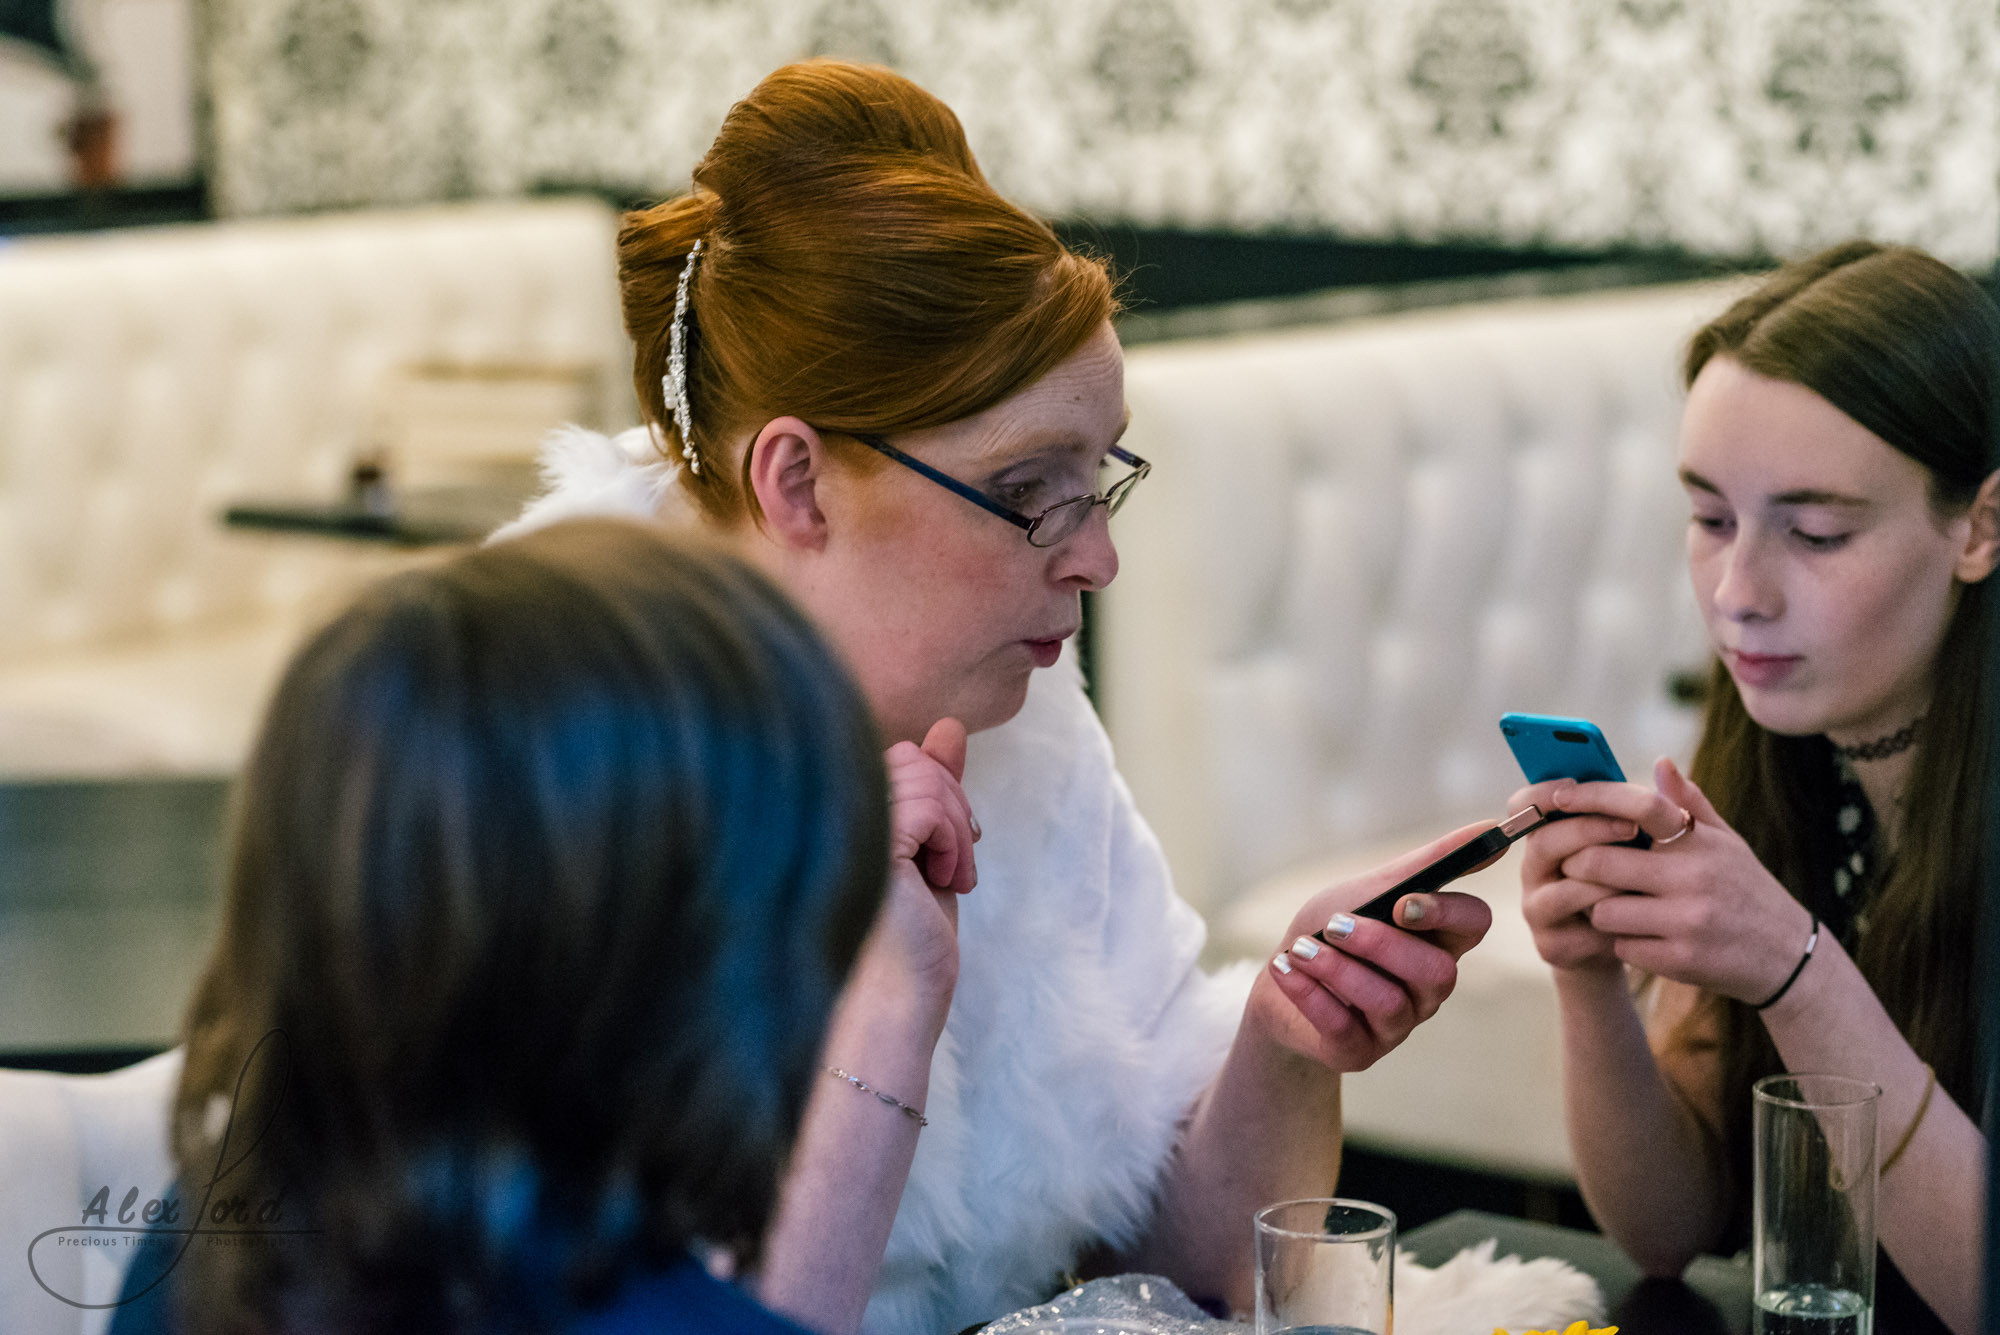 family members sit at a table during the reception and play on their phones